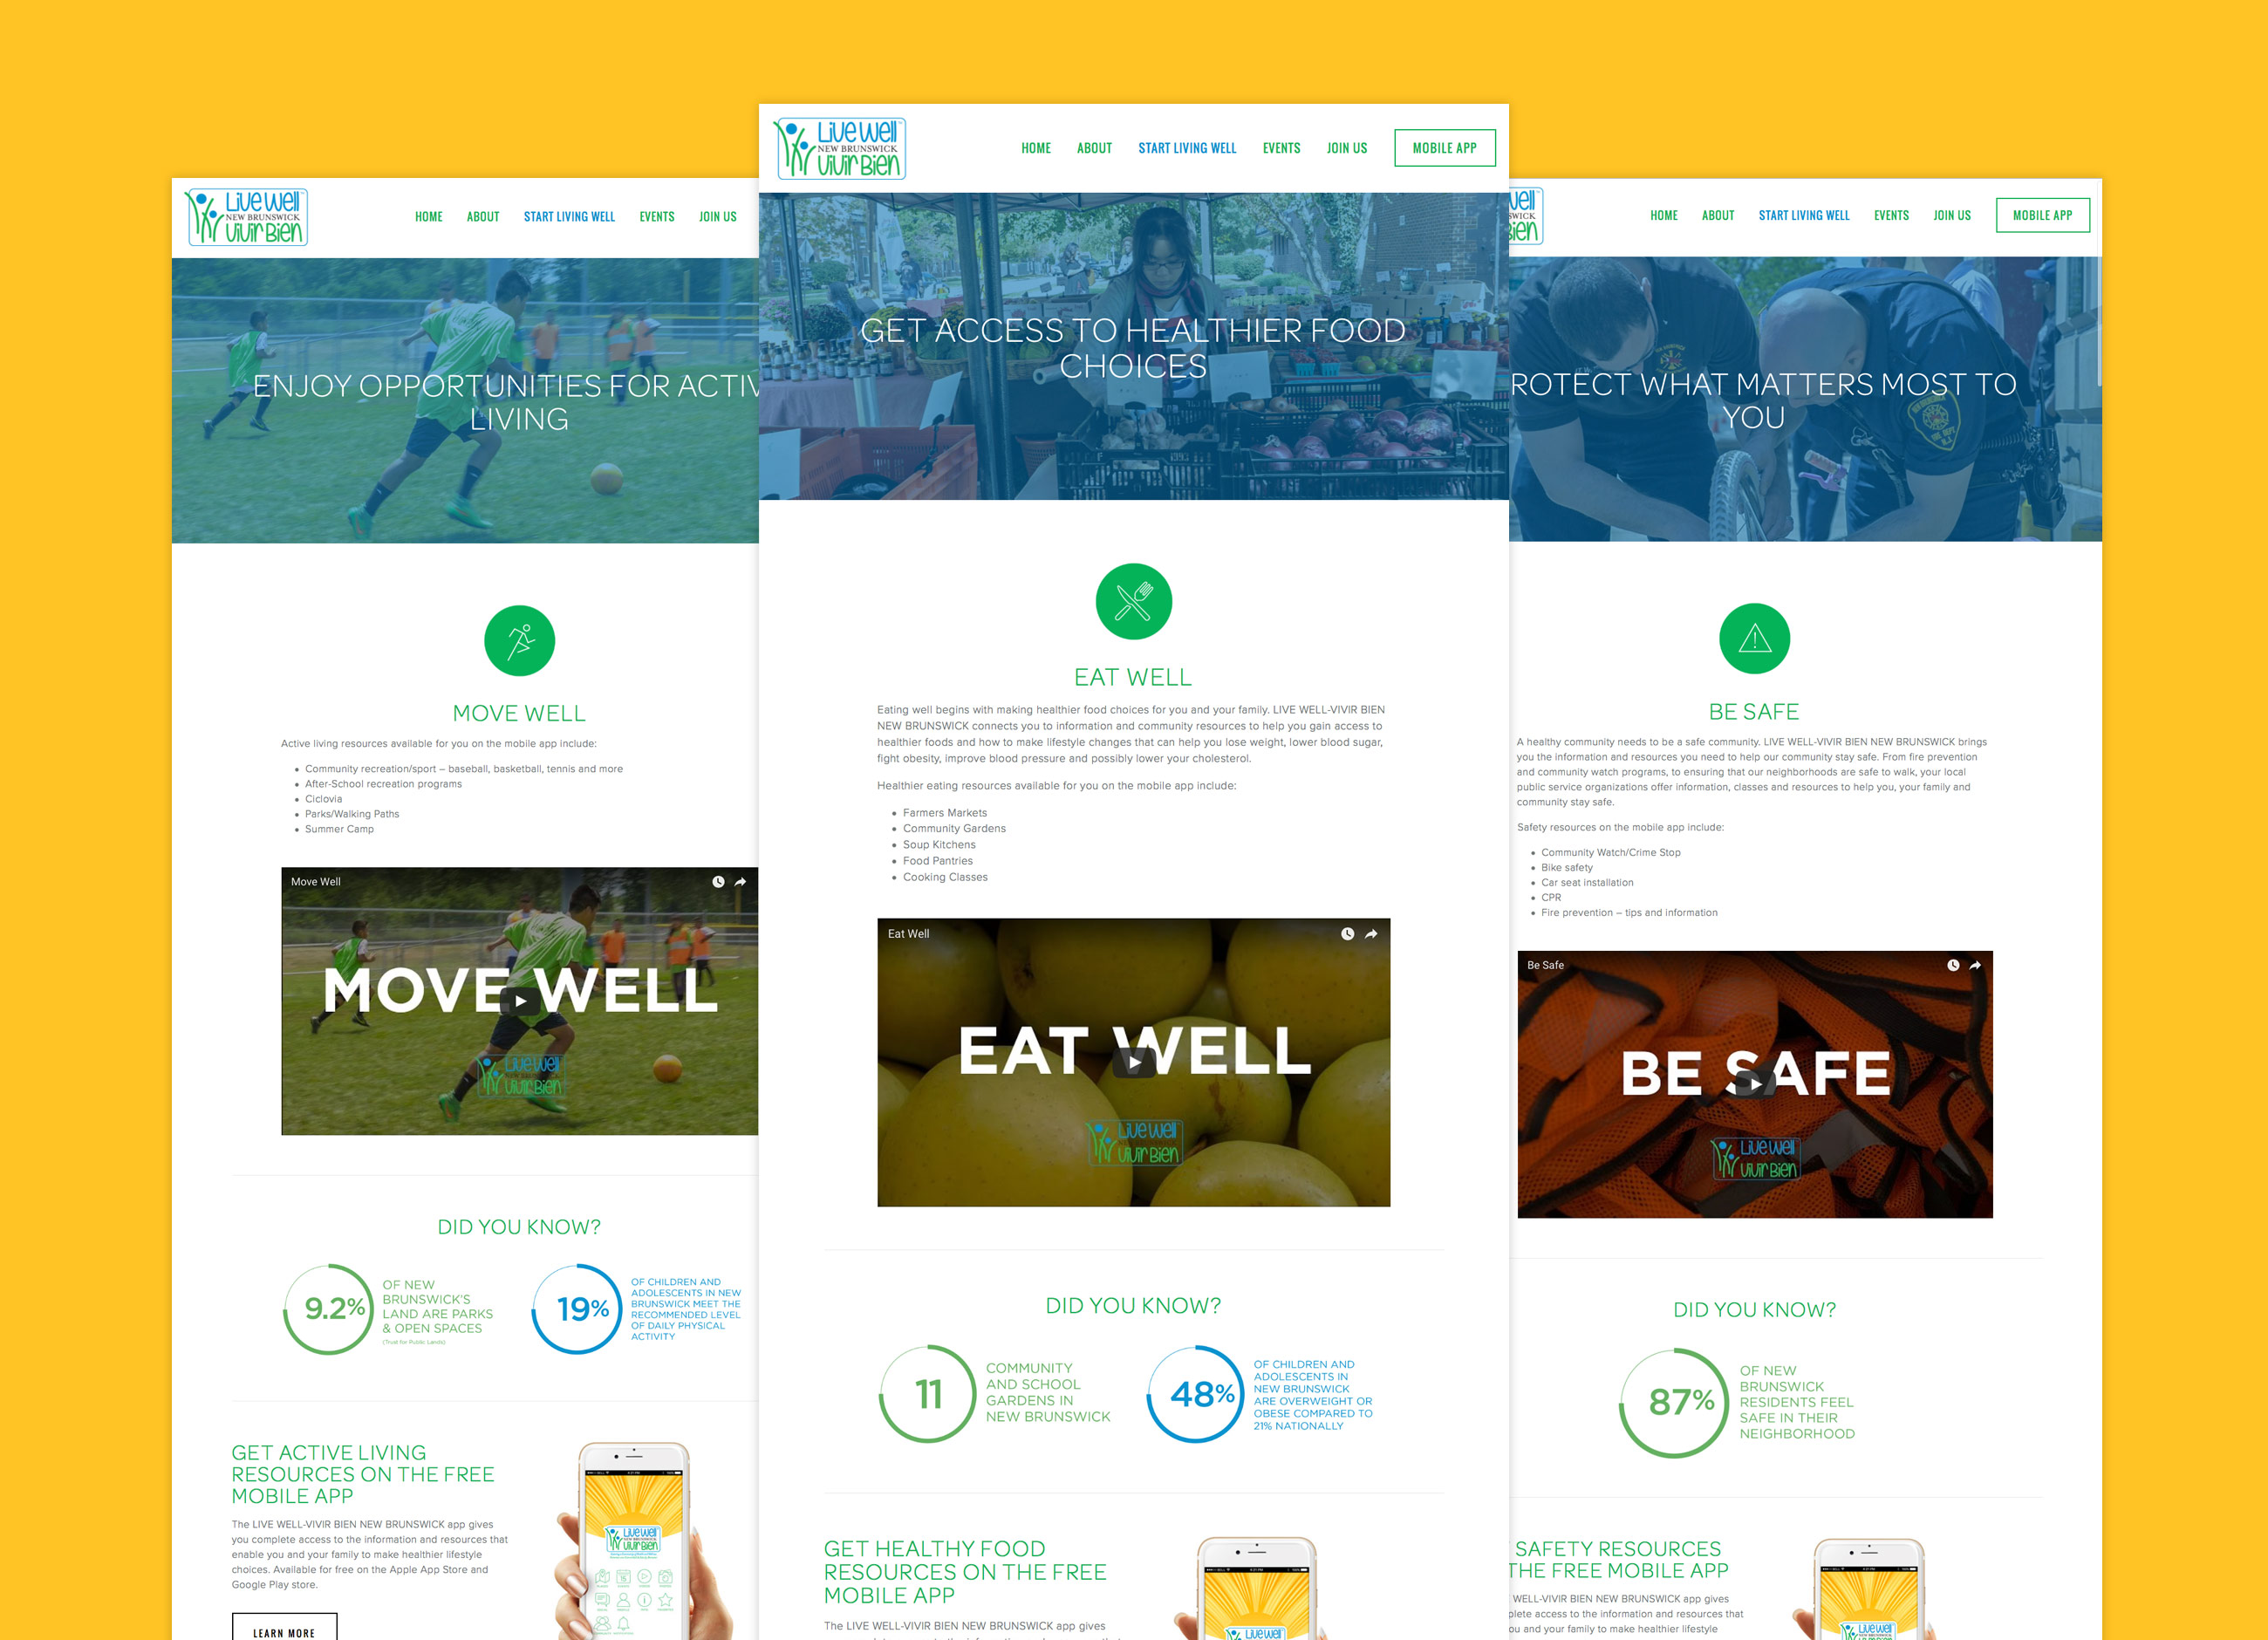 Live Well New Brunswick website interior pages